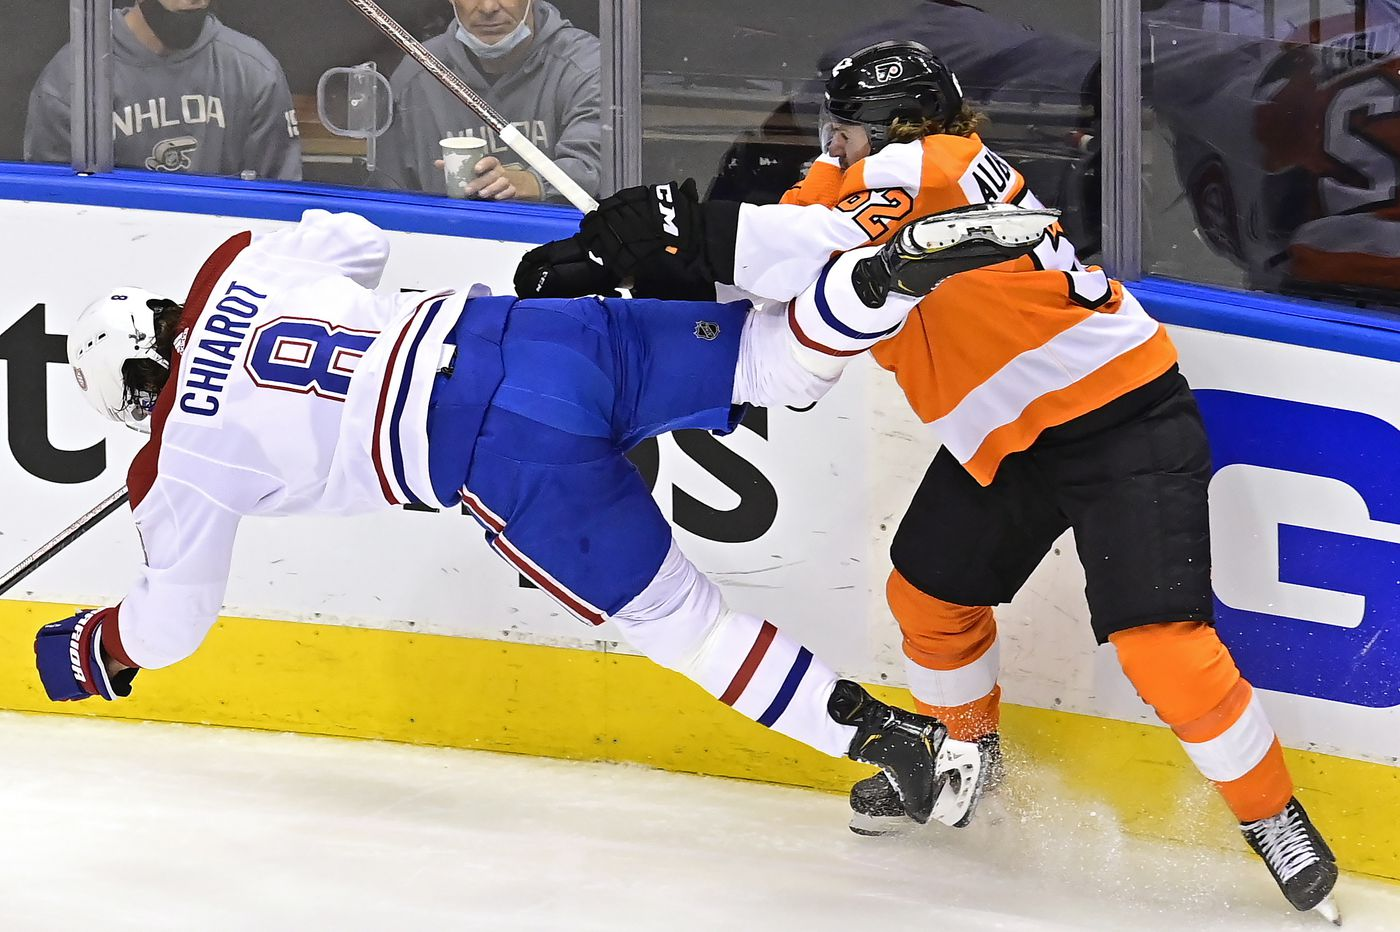 Observations from the Flyers' 2-1 win over Canadiens